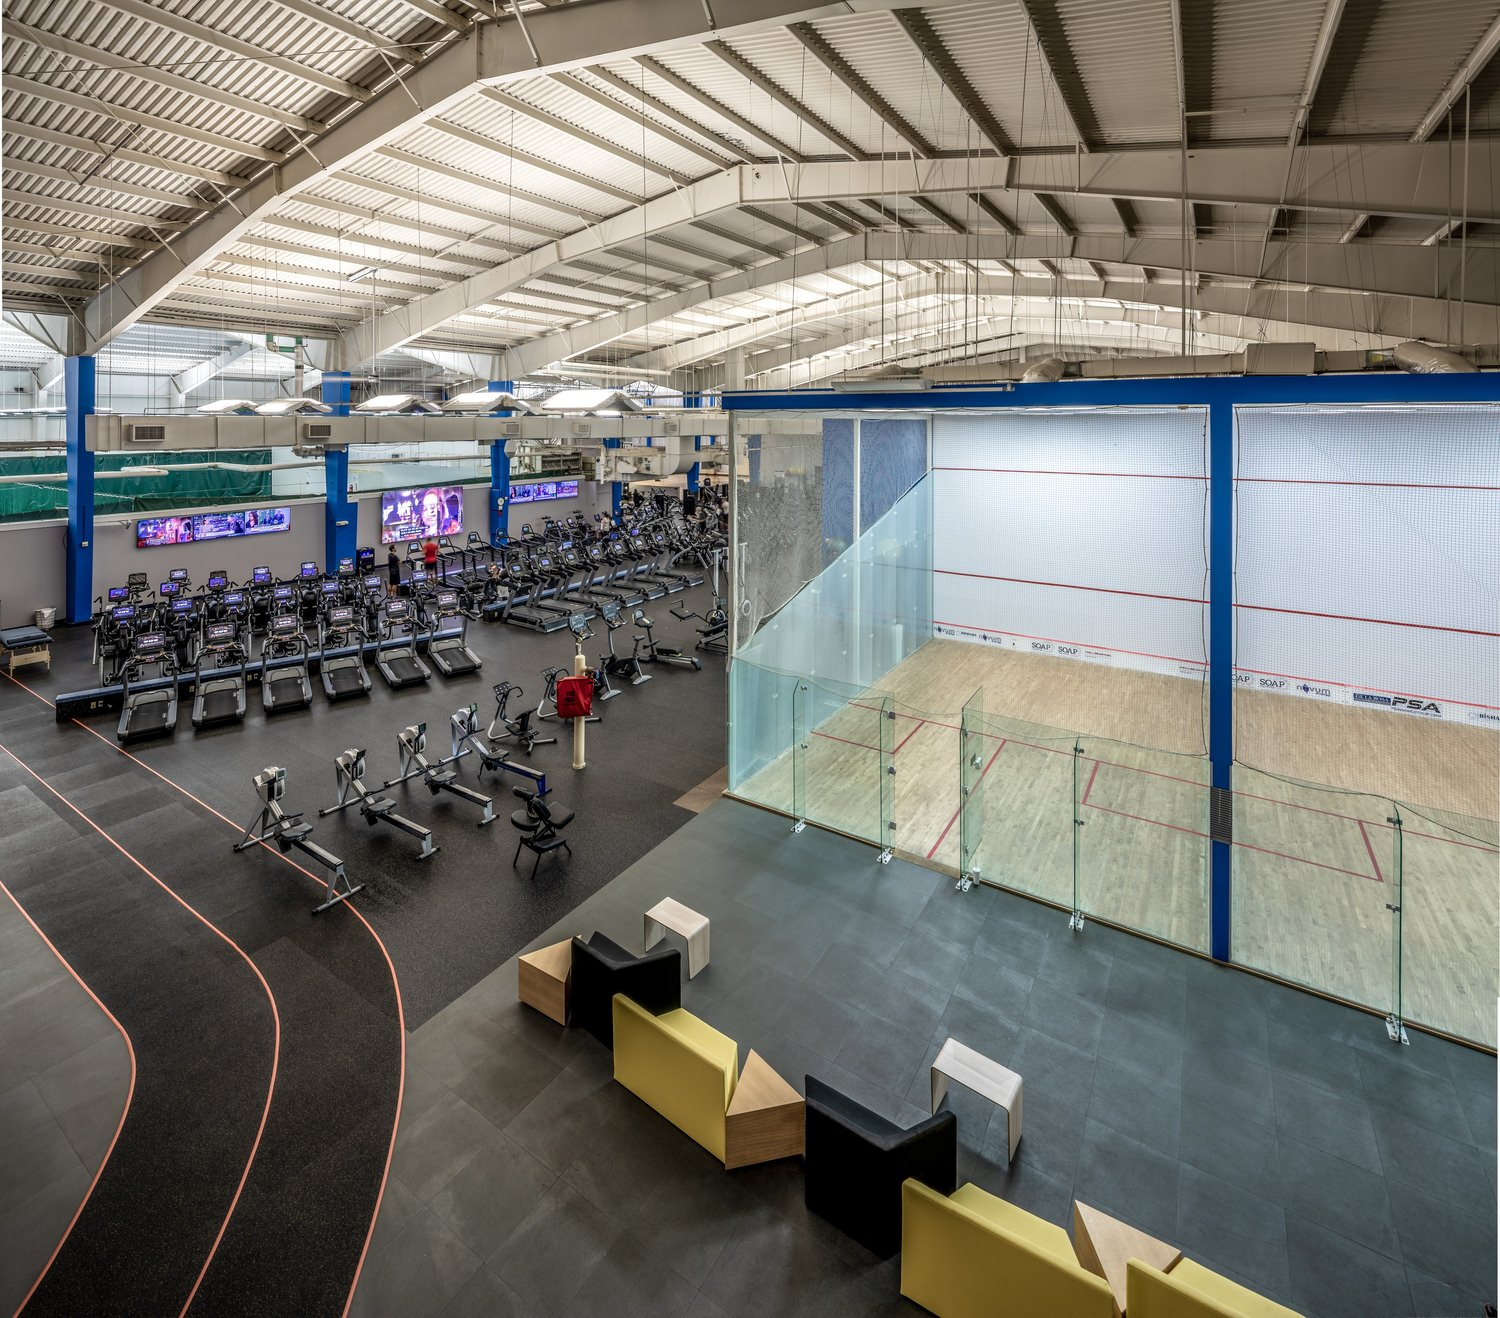 A large indoor gym that is full of furniture and exercise equipment lining the floor.